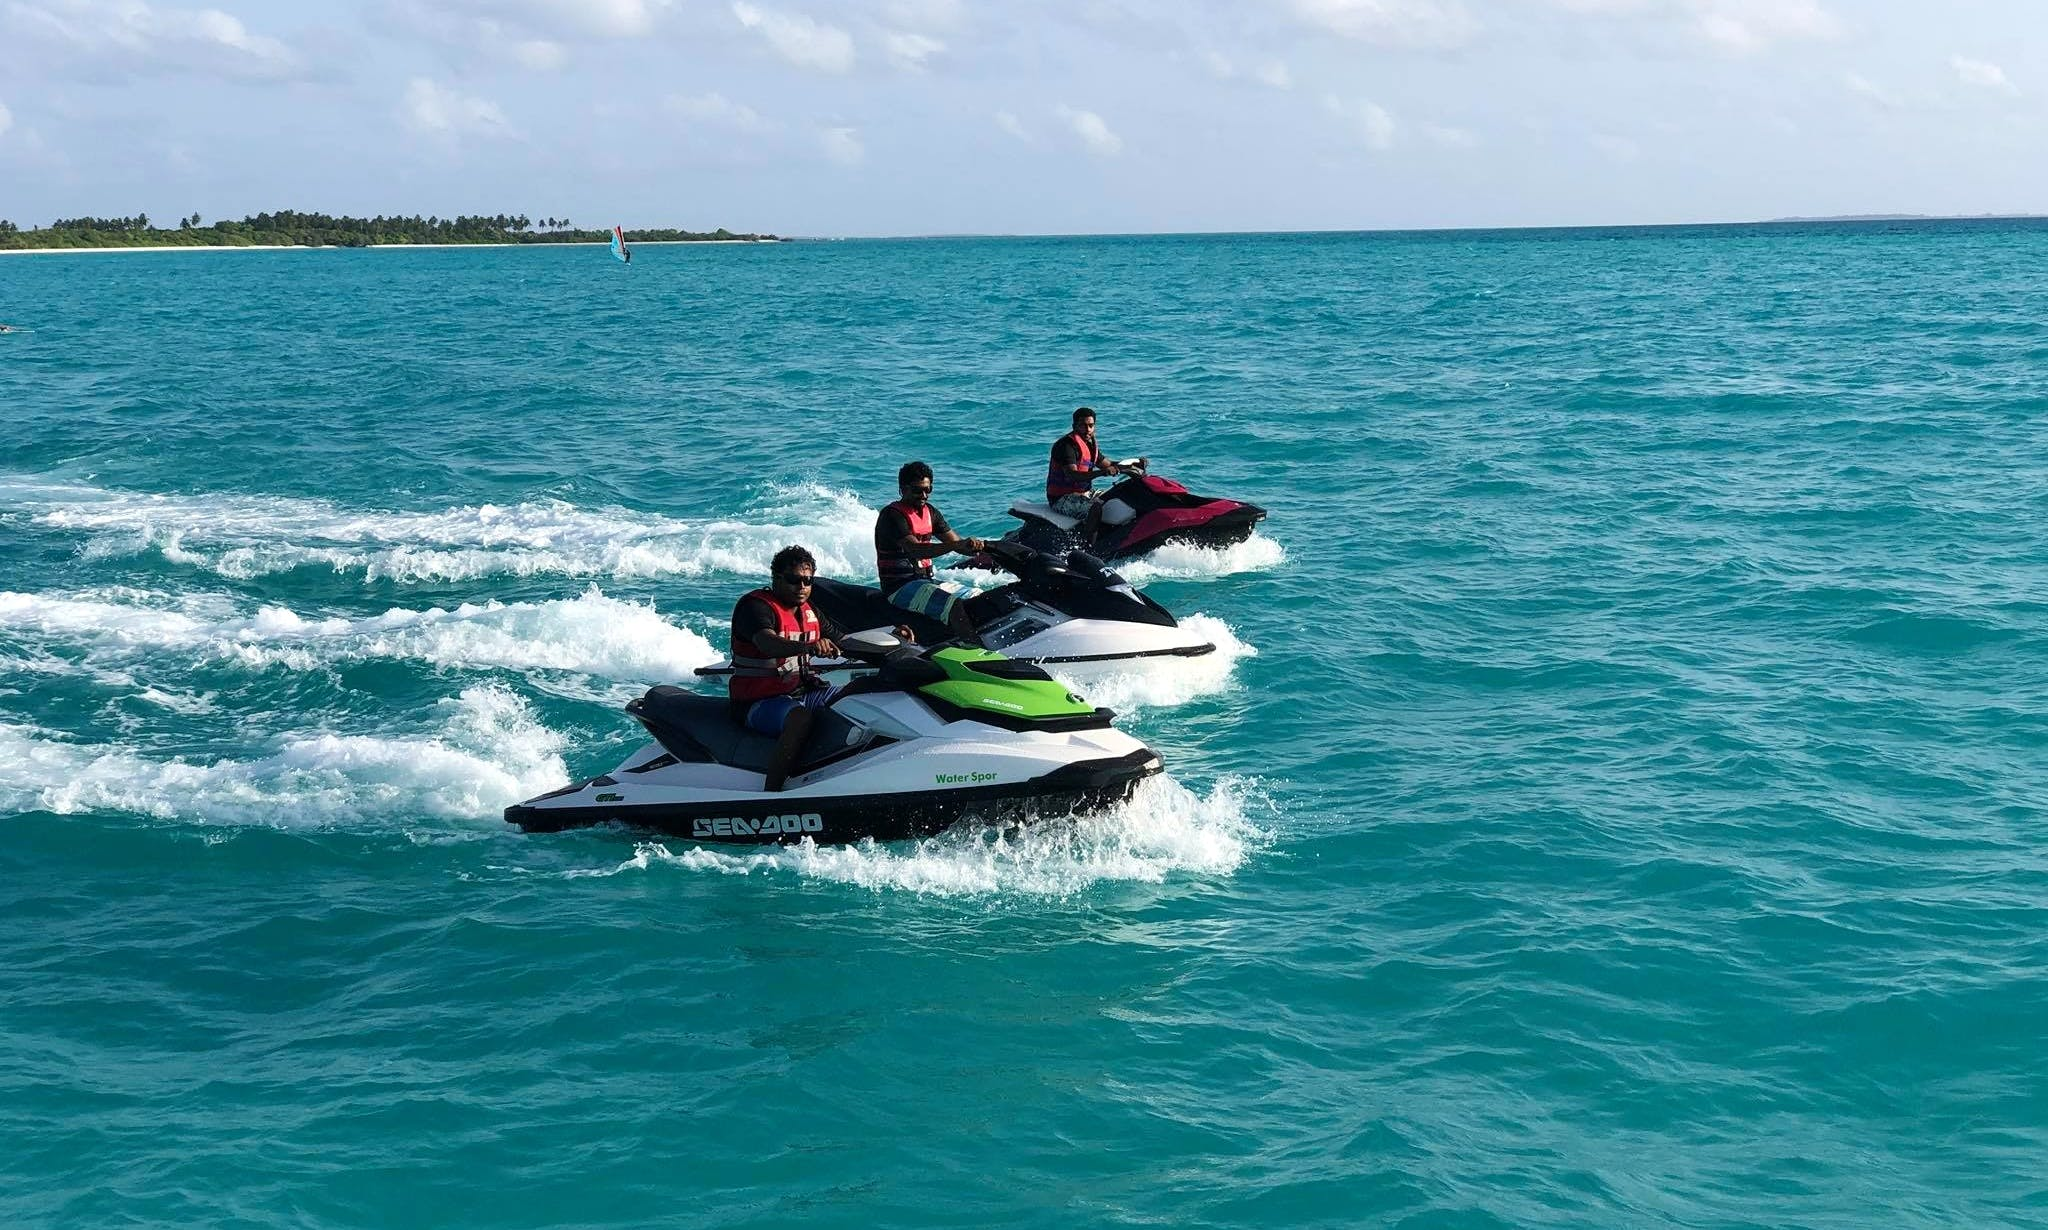 Jet Ski Rental in Kelaa, Maldives